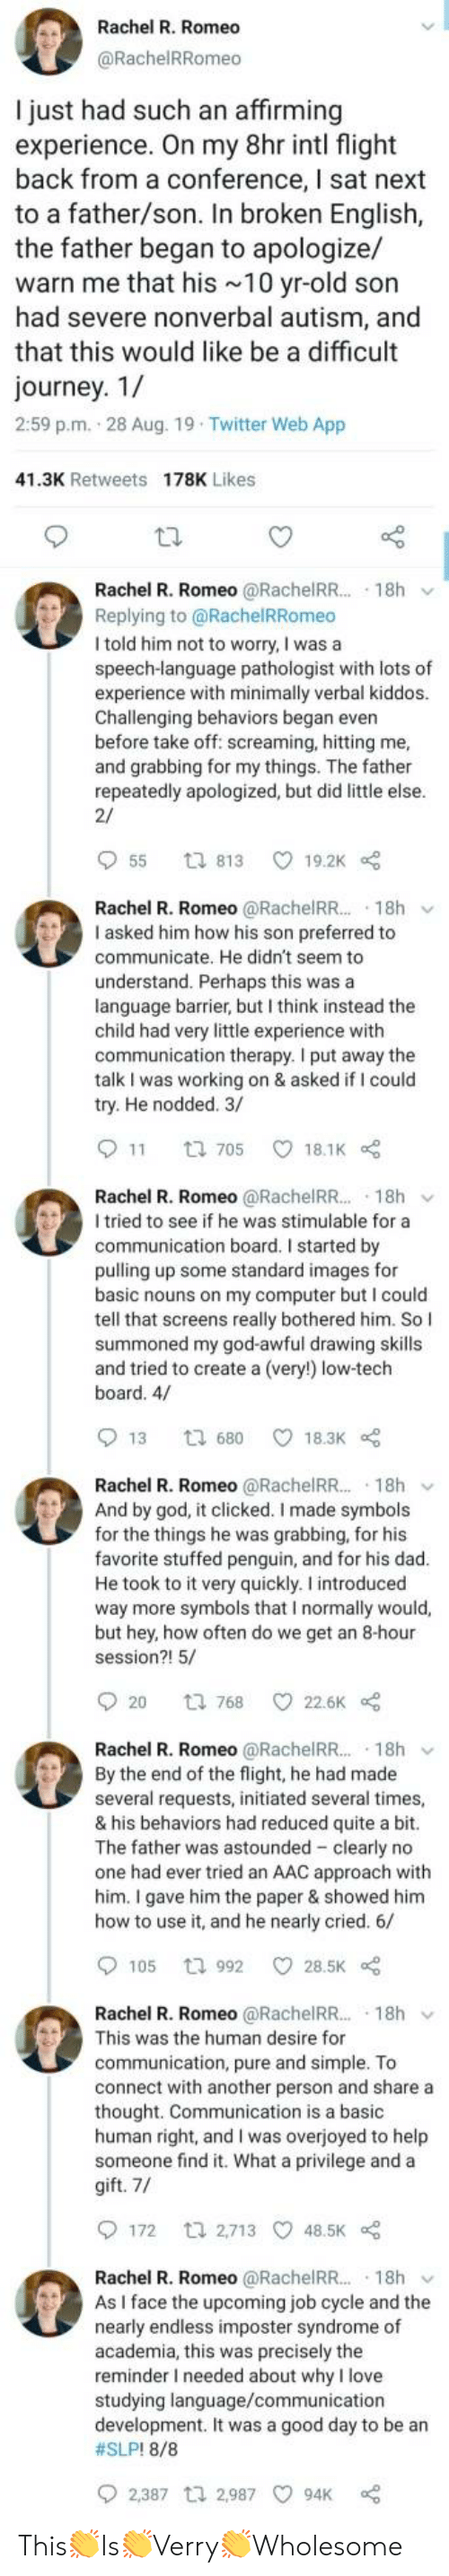 Dad, God, and Journey: Rachel R. Romeo  @RachelRRomeo  I just had such an affirming  experience. On my 8hr intl flight  back from a conference, I sat next  to a father/son. In broken English,  the father began to apologize/  warn me that his 10 yr-old son  had severe nonverbal autism, and  that this would like be a difficult  journey. 1/  2:59 p.m. 28 Aug. 19 Twitter Web App  41.3K Retweets 178K Likes  Rachel R. Romeo @RachelRR.. 18h  Replying to @RachelRRomeo  I told him not to worry, I was a  speech-language pathologist with lots of  experience with minimally verbal kiddos.  Challenging behaviors began even  before take off: screaming, hitting me,  and grabbing for my things. The father  repeatedly apologized, but did little else.  2/  55  19.2K  t 813  Rachel R. Romeo @RachelR... 18h  I asked him how his son preferred to  communicate. He didn't seem to  understand. Perhaps this was a  language barrier, but I think instead the  child had very little experience with  communication therapy. I put away the  talk I was working on & asked if I could  try. He nodded. 3/  11  18.1K  t 705  Rachel R. Romeo @RachelR... 18h  I tried to see if he was stimulable for a  communication board. I started by  pulling up some standard images for  basic nouns on my computer but I could  tell that screens really bothered him. So I  summoned my god-awful drawing skills  and tried to create a (very!) low-tech  board. 4/  13  18.3K  t 680  Rachel R. Romeo @RachelRR.. 18h  And by god, it clicked. I made symbols  for the things he was grabbing, for his  favorite stuffed penguin, and for his dad.  He took to it very quickly. I introduced  way more symbols that I normally would,  but hey, how often do we get an 8-hour  session?! 5/  20  22.6K  t 768  Rachel R. Romeo @RachelRR.. 18h  By the end of the flight, he had made  several requests, initiated several times,  & his behaviors had reduced quite a bit.  The father was astounded clearly no  one had ever tried an AAC approach with  him. I ga